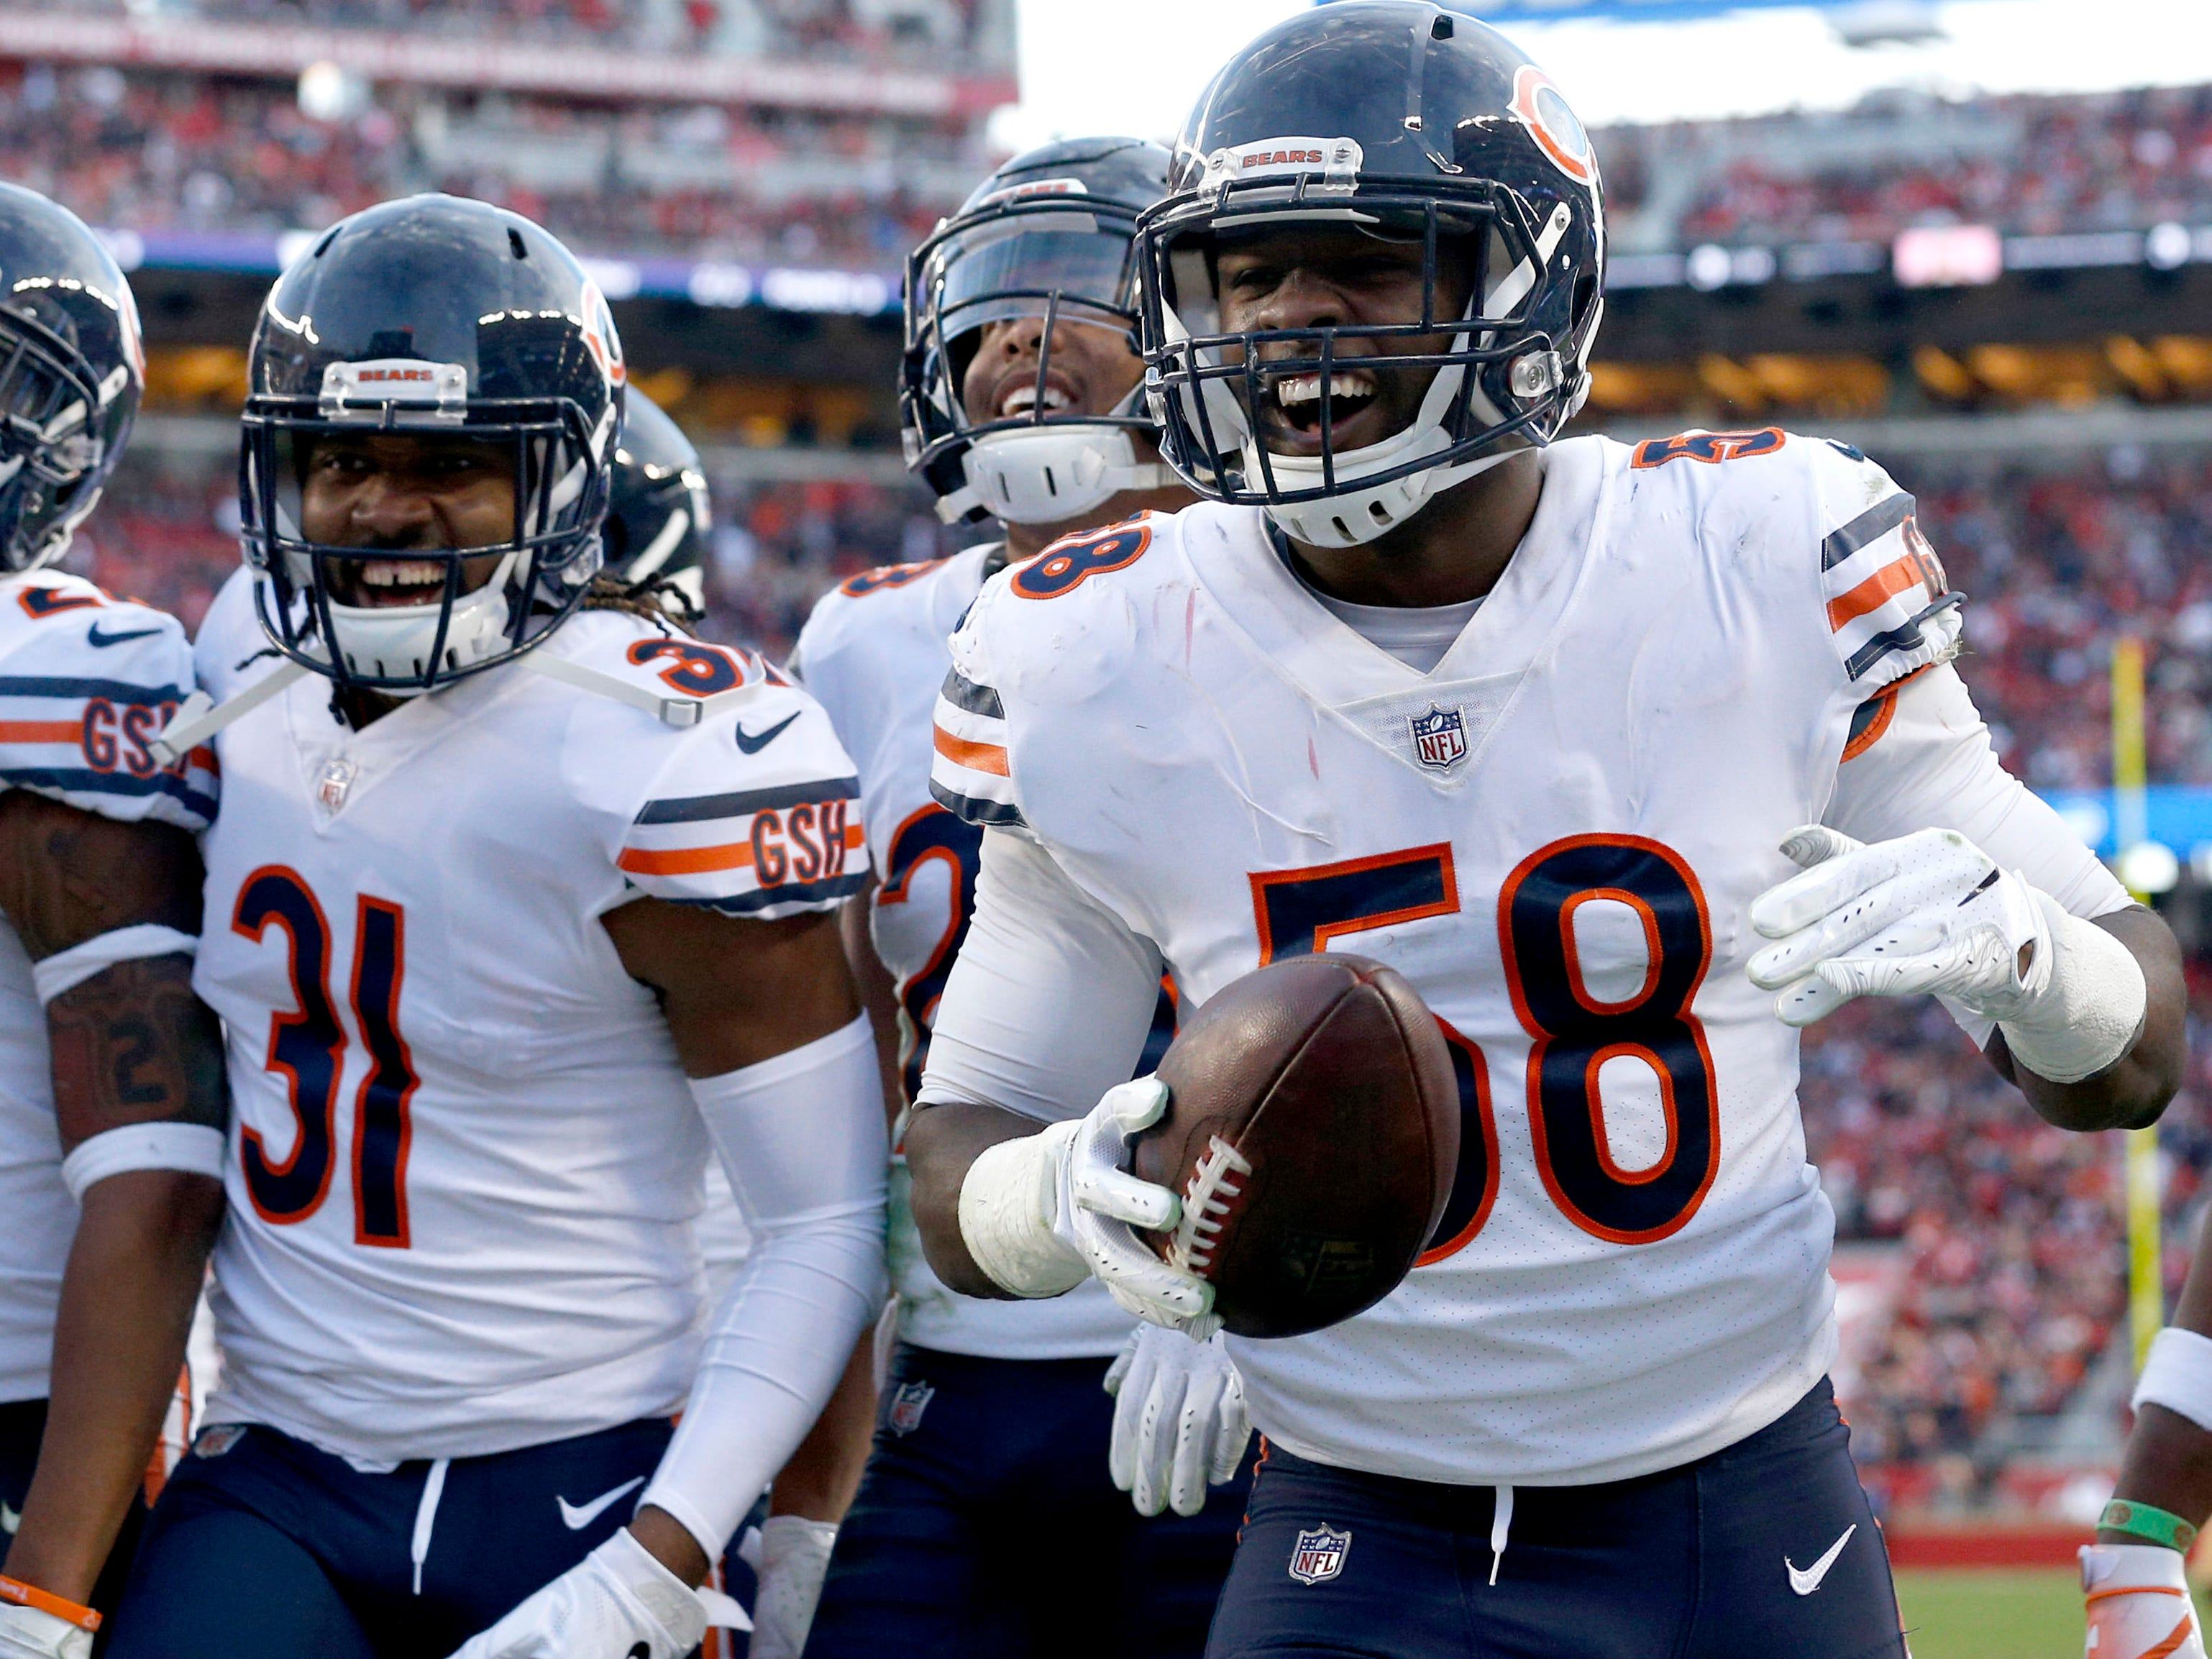 2. Bears (3): Feels too high? Crack defense has league-best 36 takeaways. Opponents have 72.5 QB rating, easily league's worst. Who beats them in Windy City? They're legit.